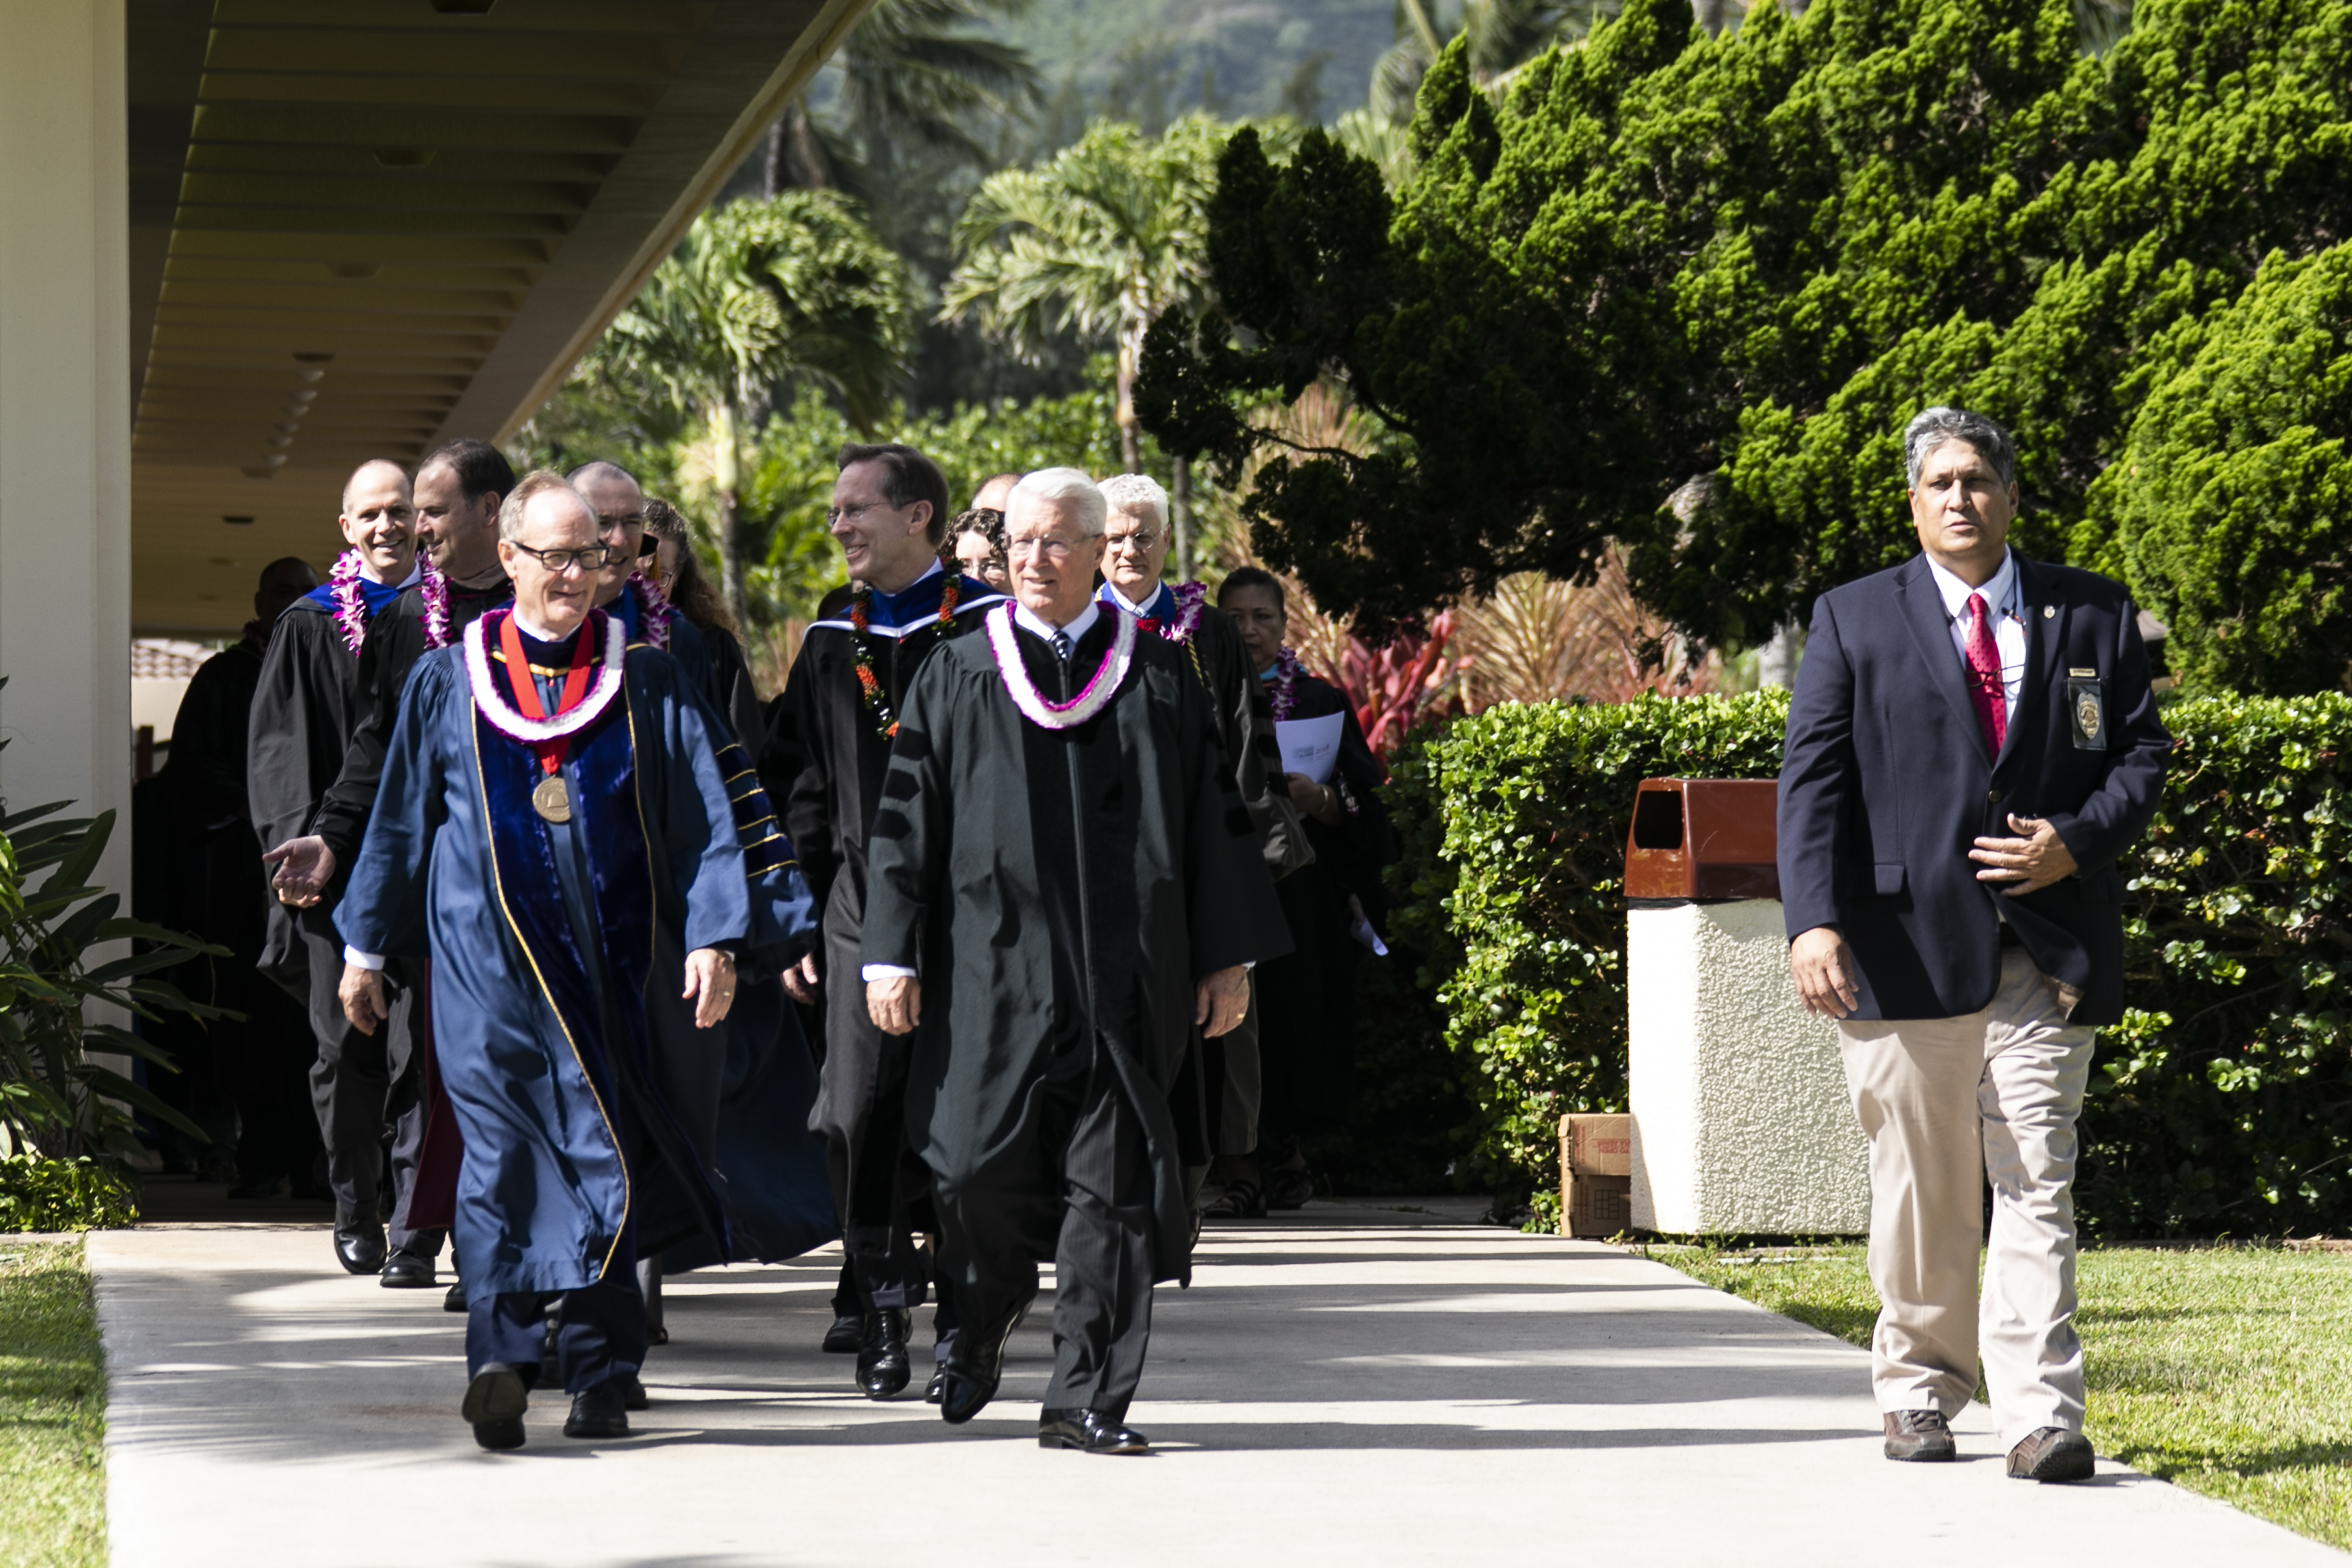 Bishop Dean M. Davies of the Presiding Bishopric, right, walks with BYU-Hawaii President John S. Tanner prior to graduation on June 30.